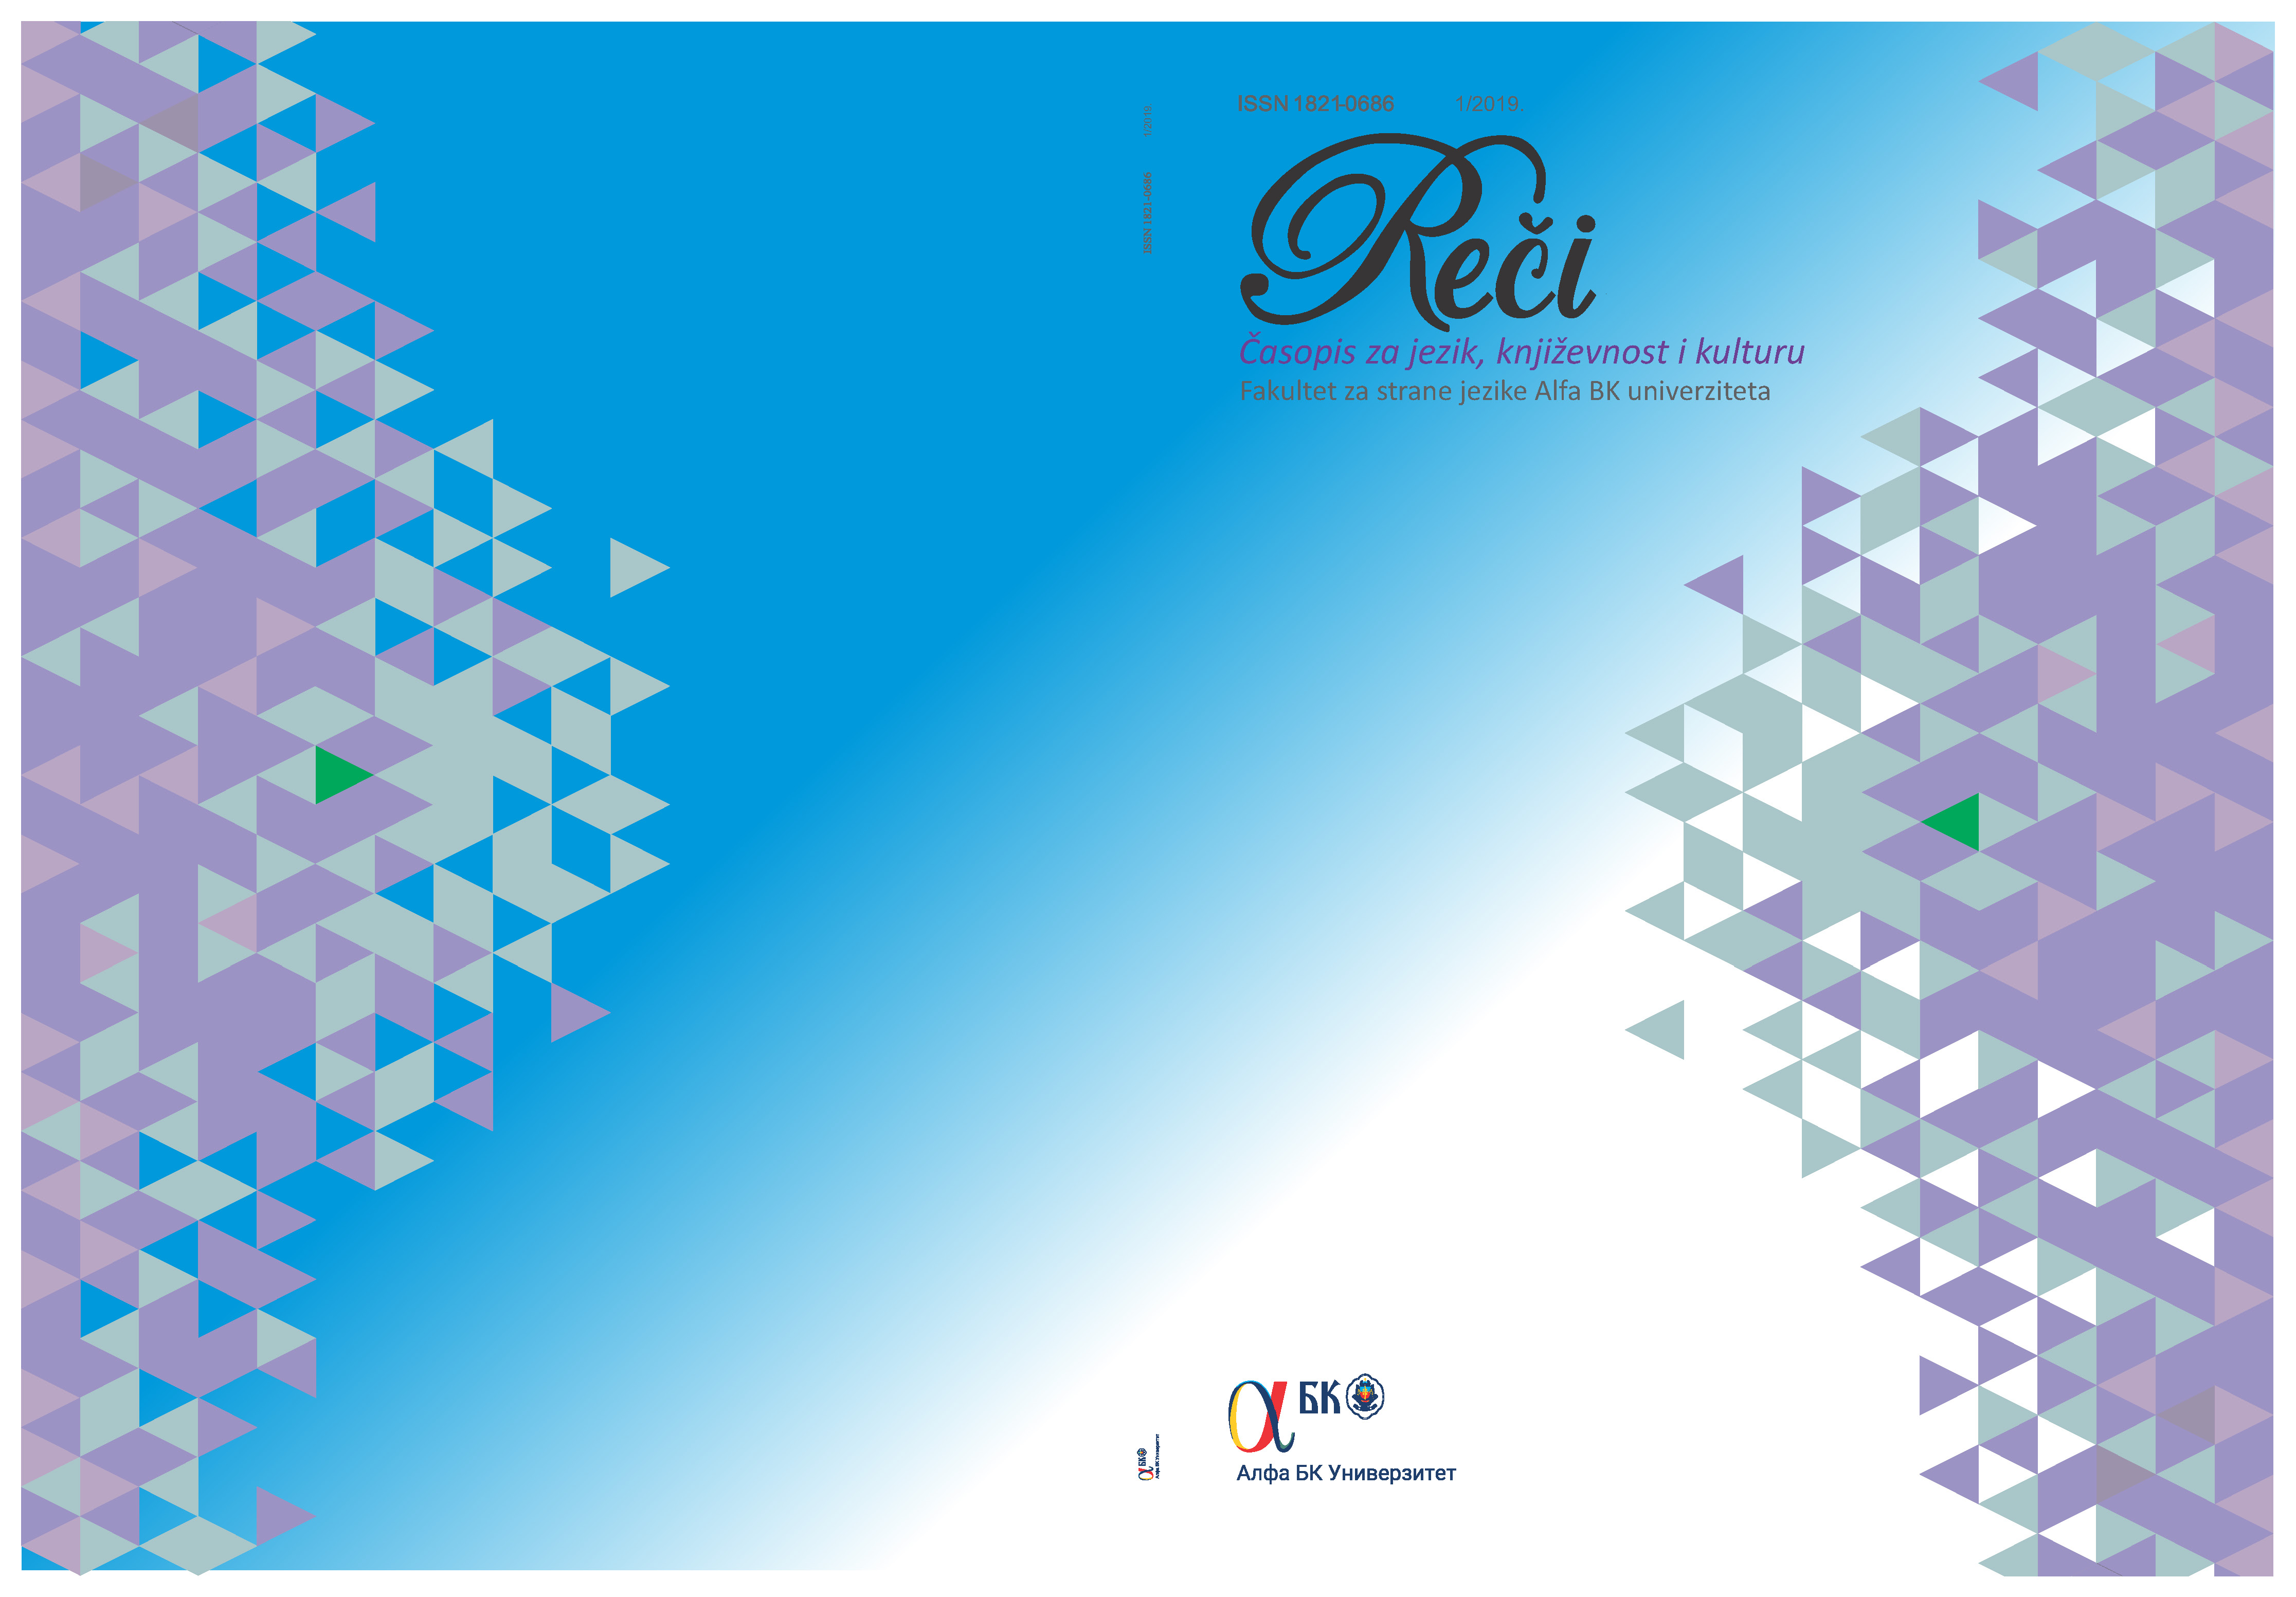 View No. 12 (2019): Reči, Journal of Language, Literature and Culture